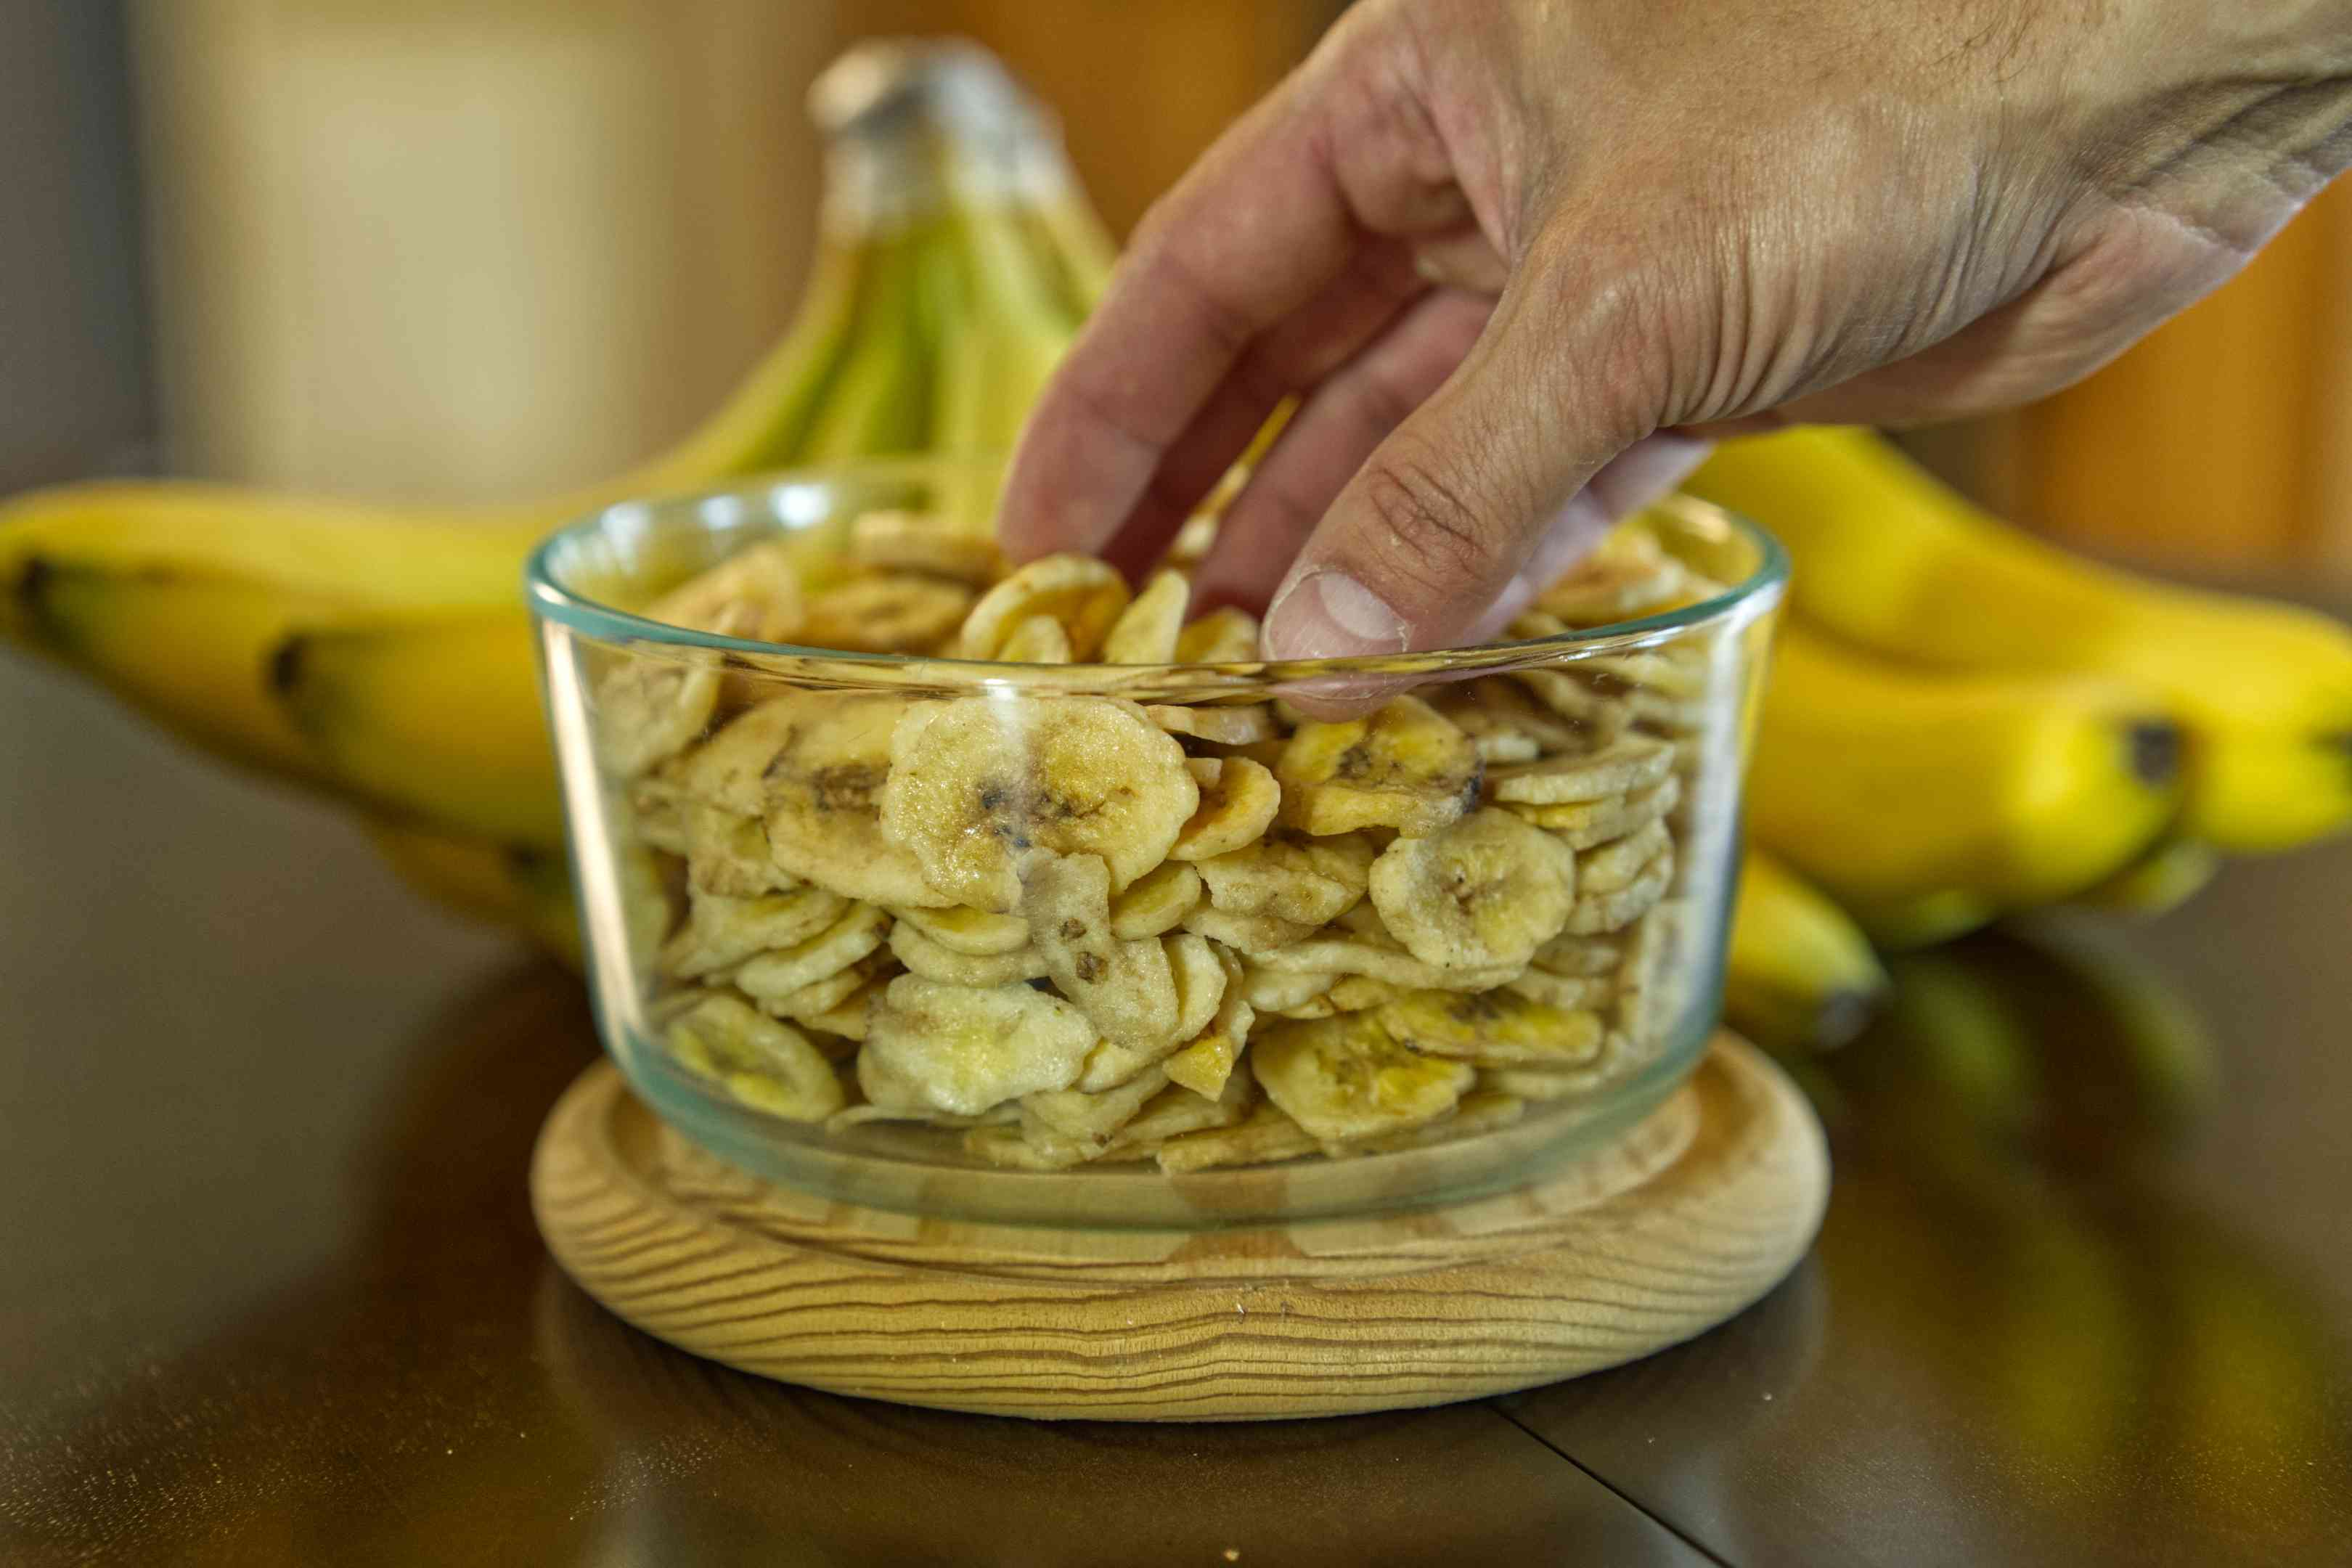 hand dips into glass jar of dried banana chips on table